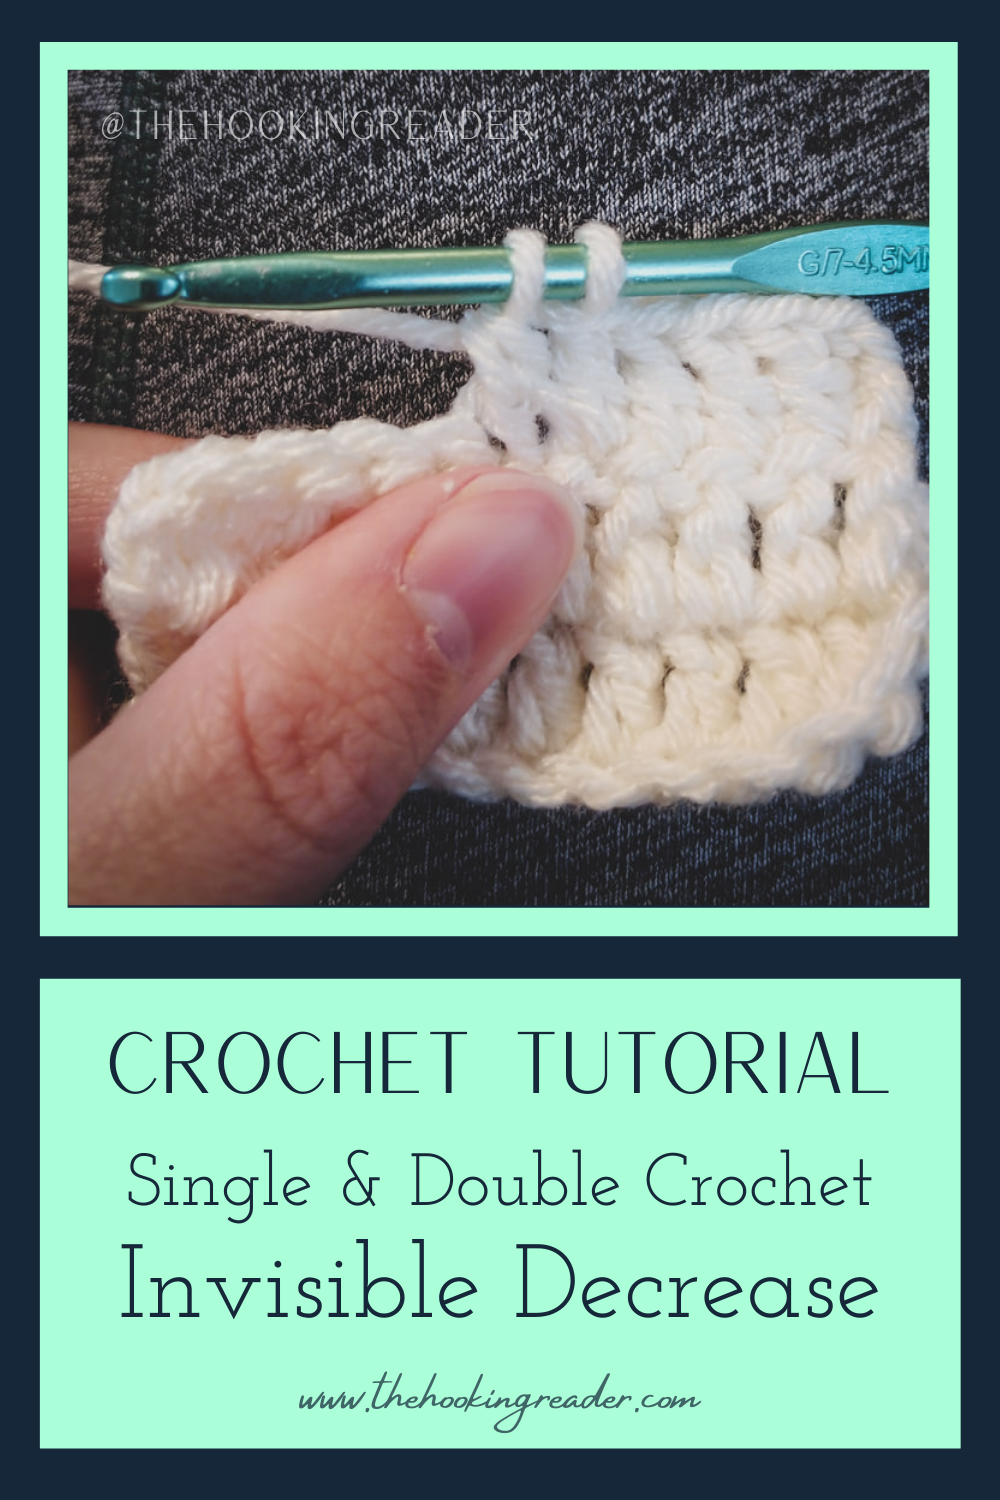 Single & Double Crochet Invisible Decrease